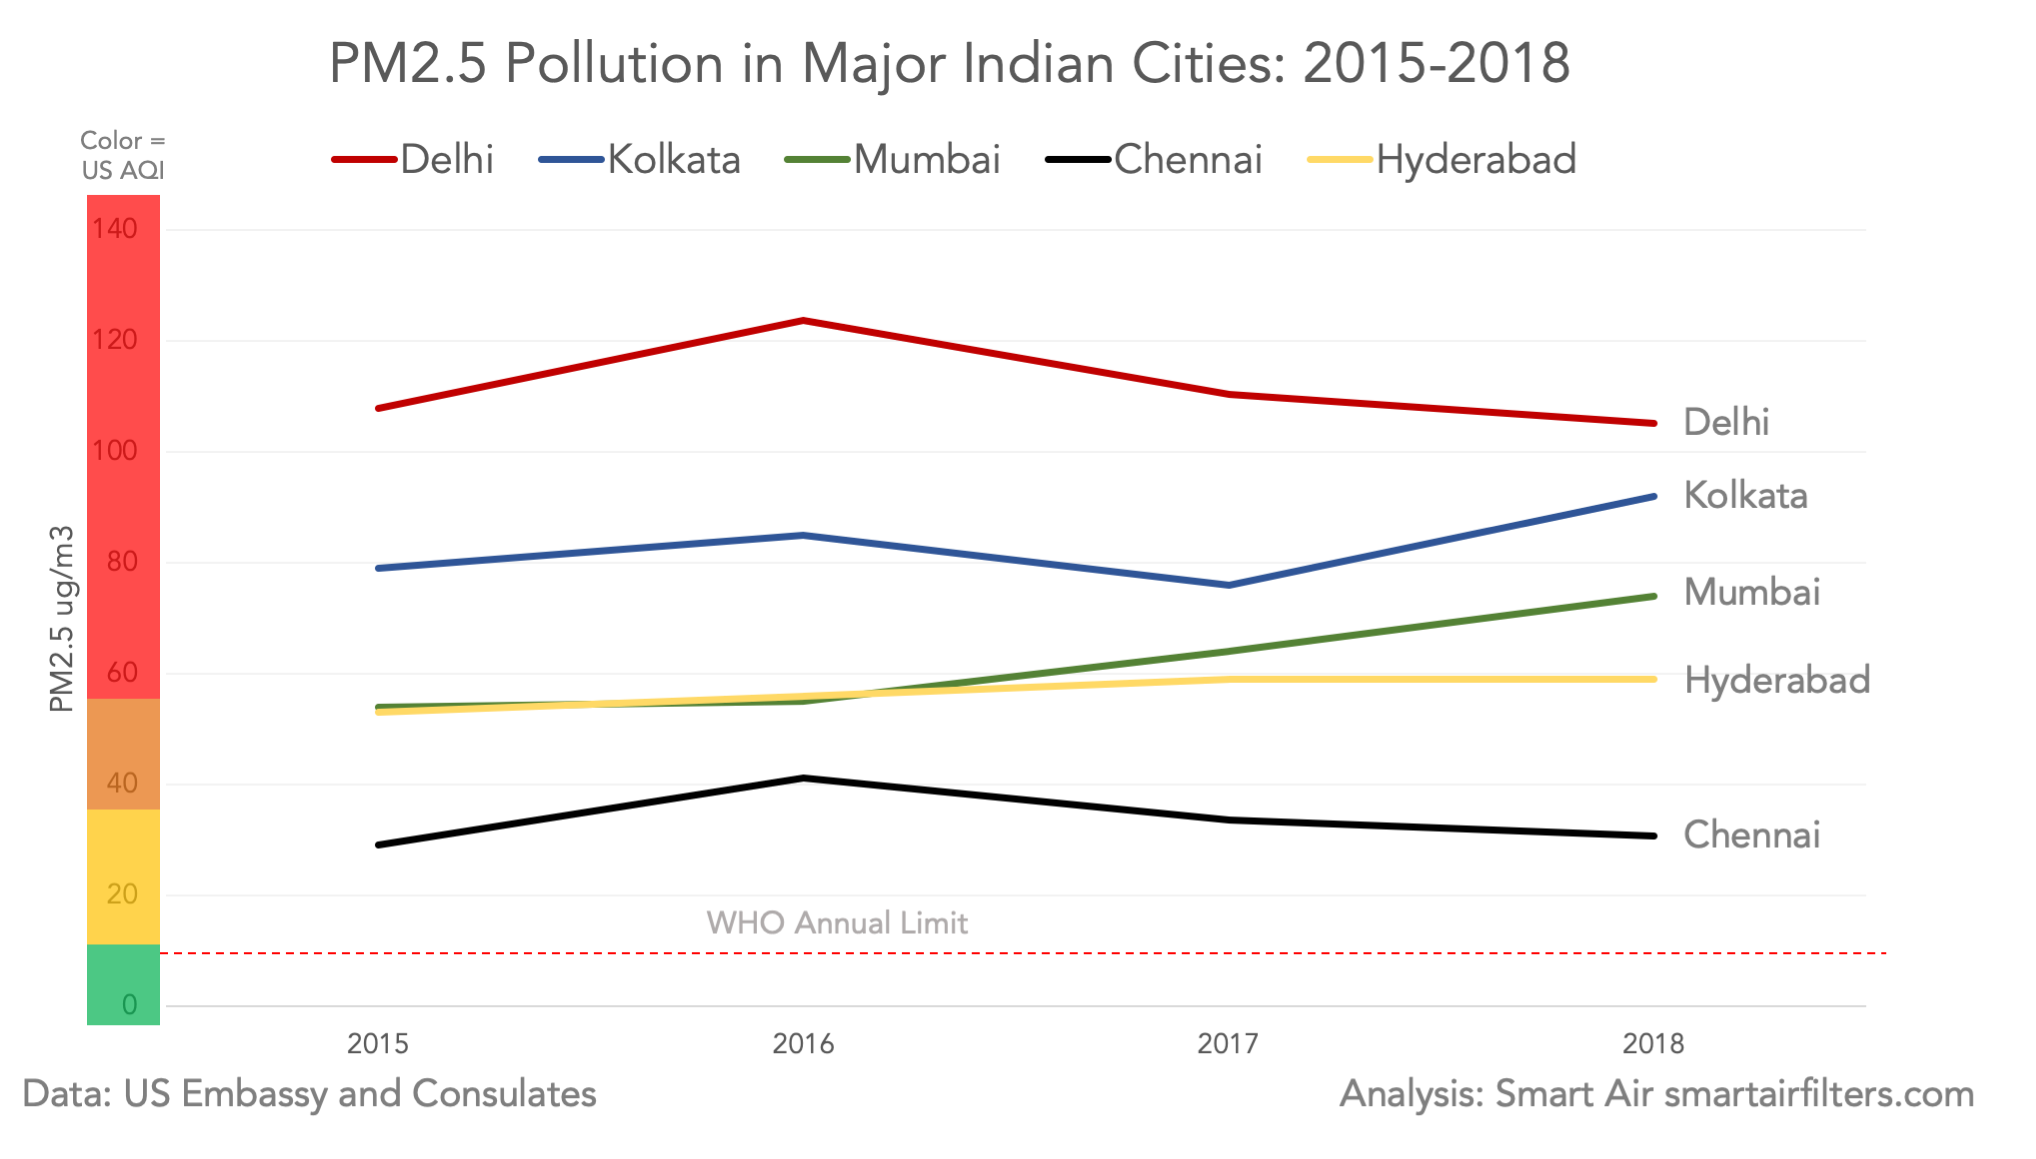 India major cities air quality 2015-2018 PM2.5 data